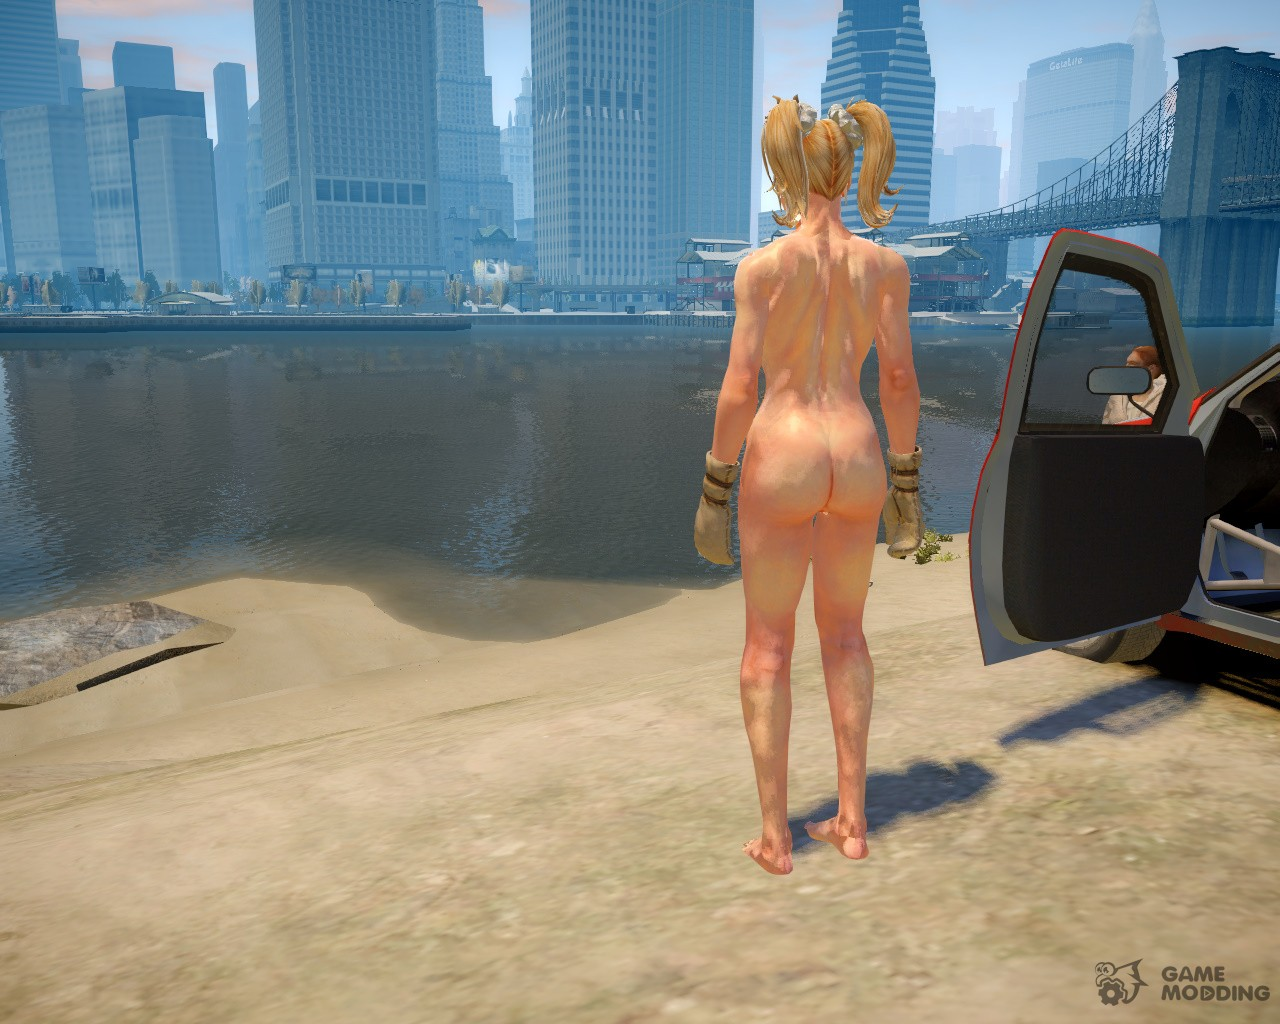 Gta 5 female naked porncraft image